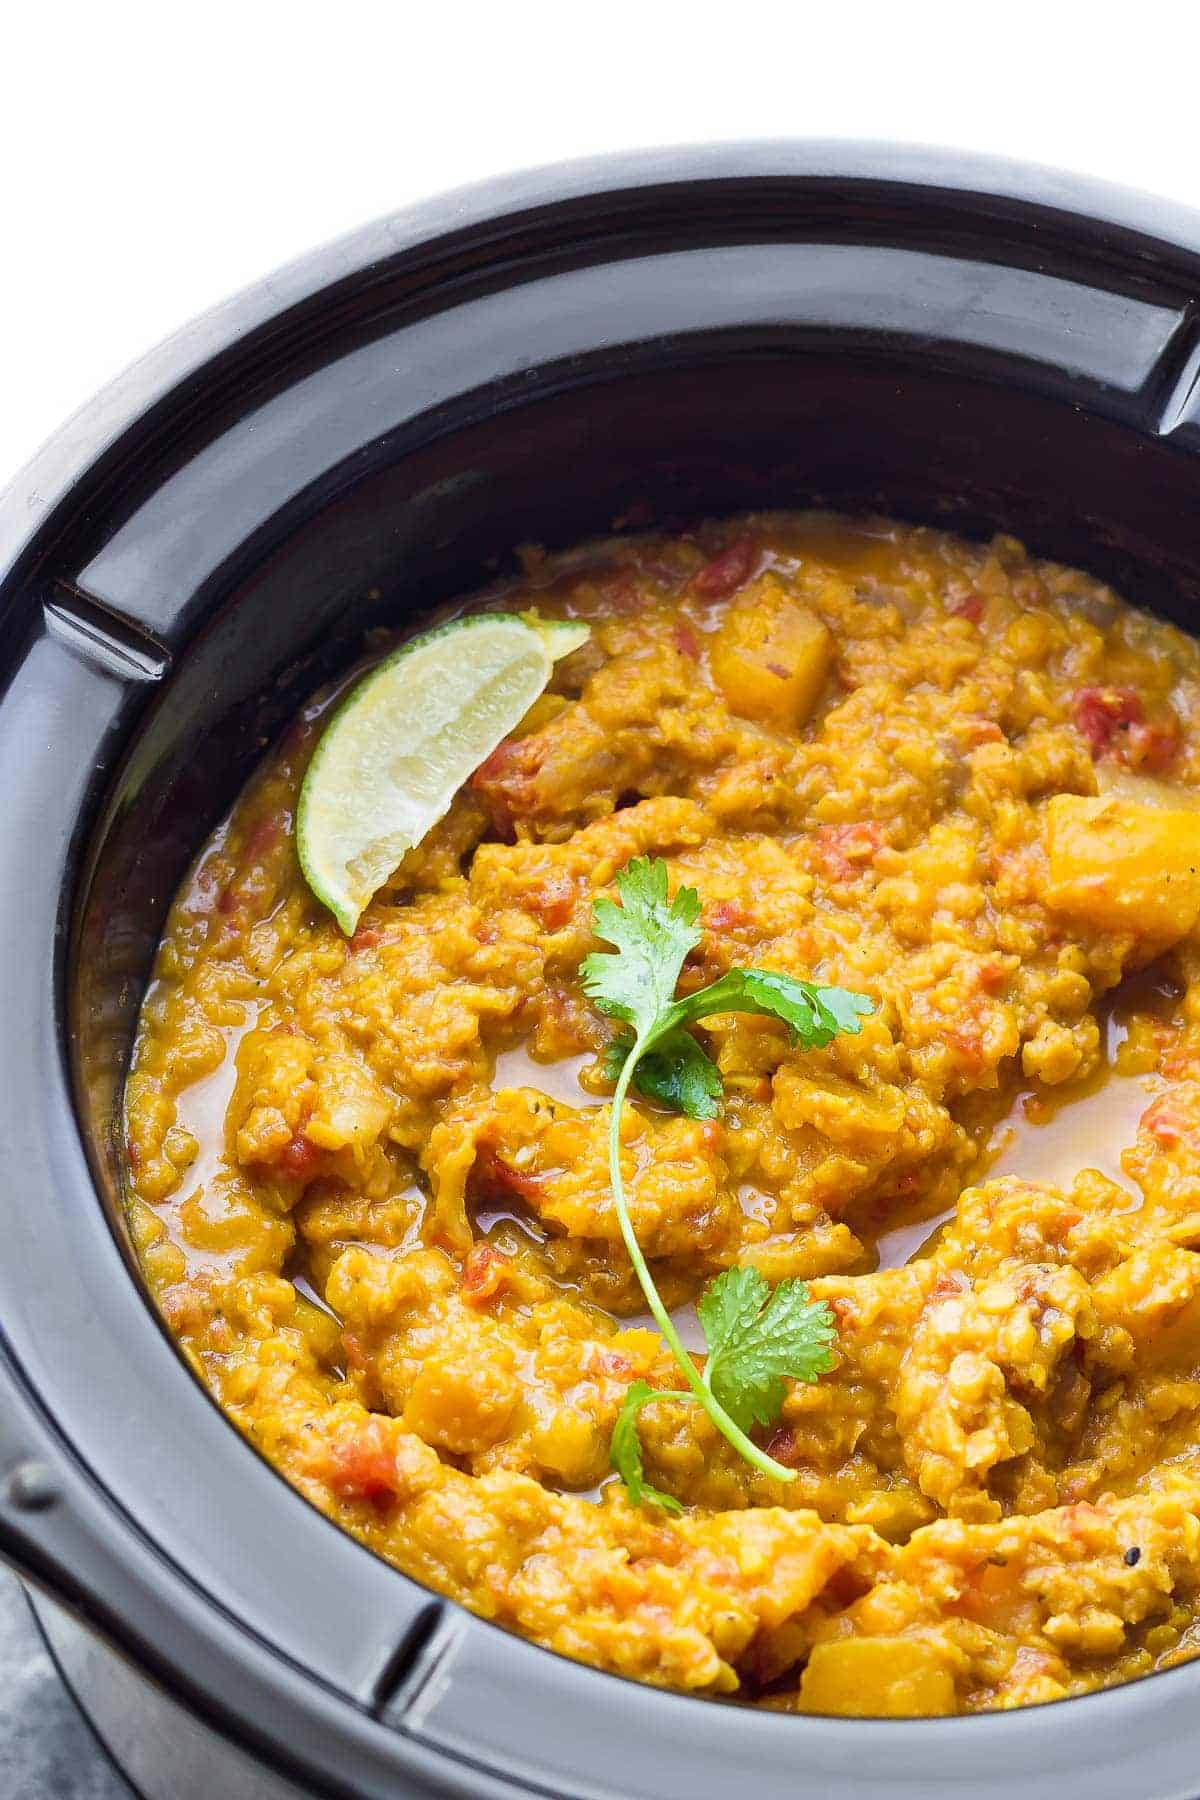 Slow Cooker Butternut Squash Lentil Curry. Vegan, gluten-free, dairy-free, and a super healthy lunch or dinner recipe!